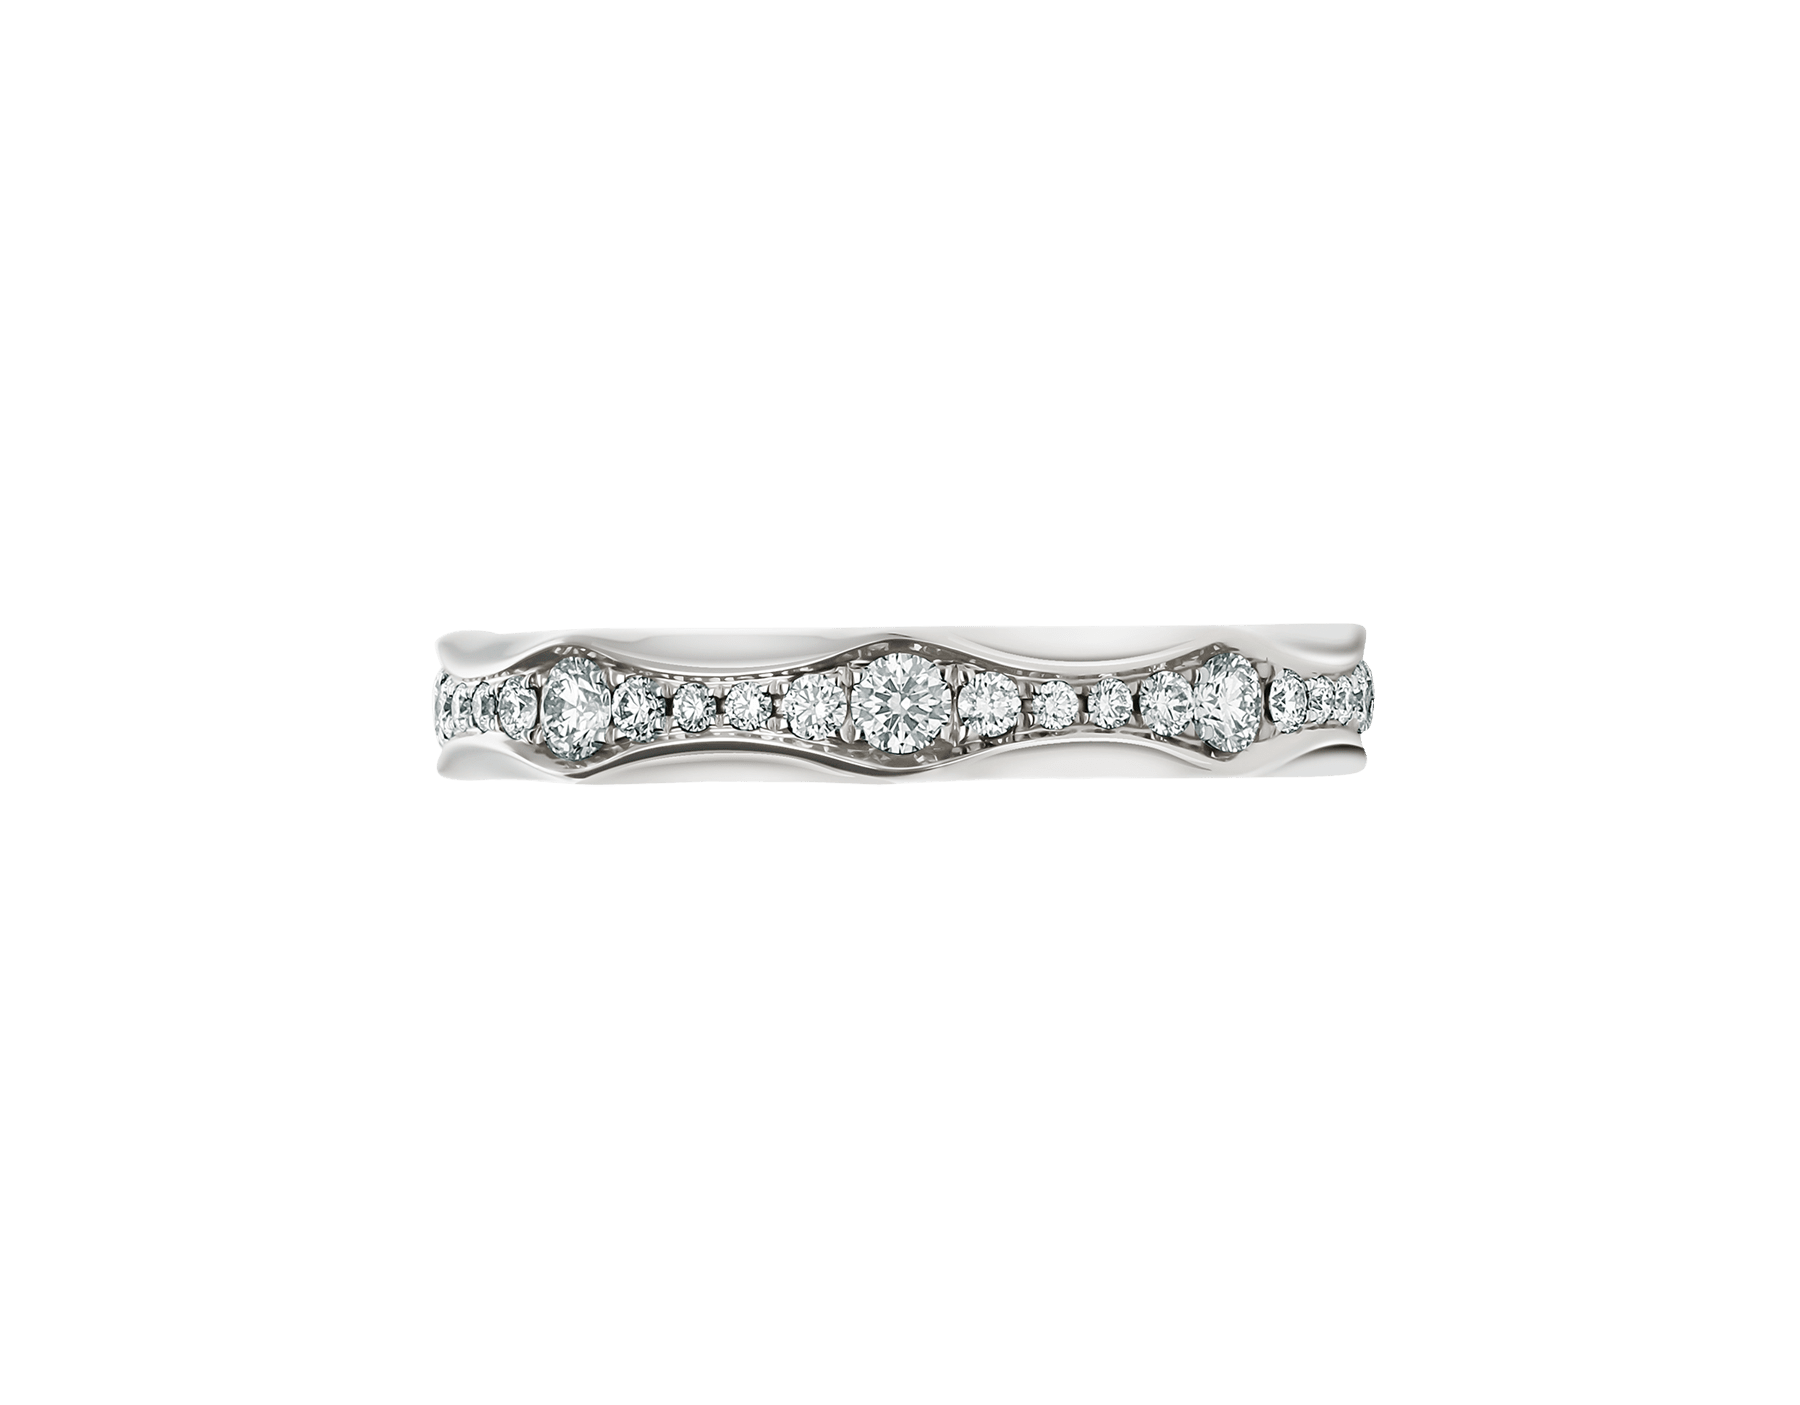 Infinito wedding band in platinum, set with full pavé diamonds. AN857697 image 2